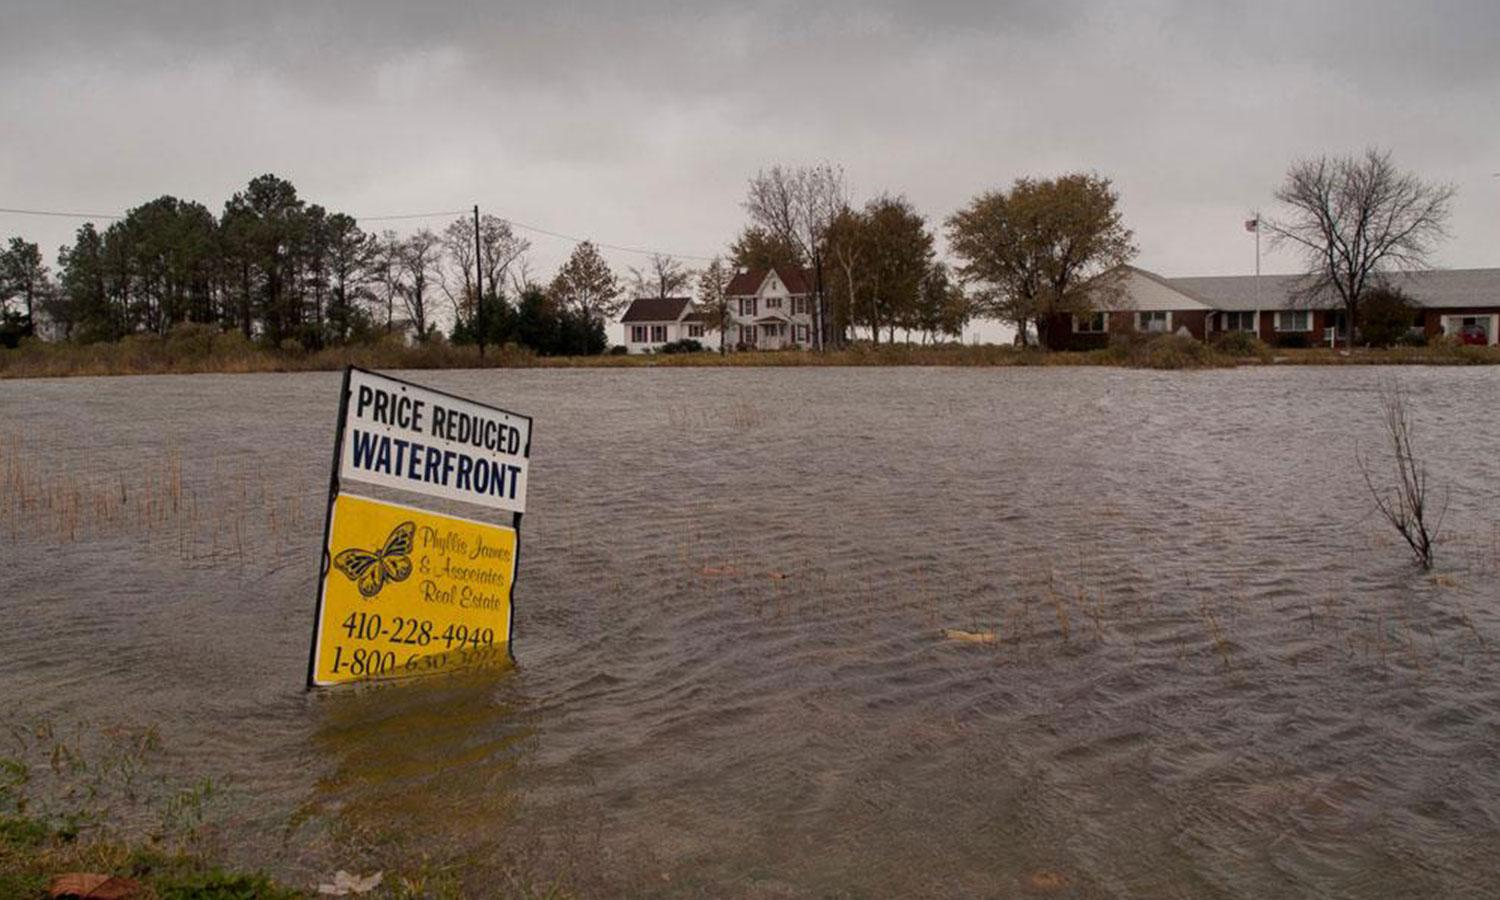 A waterfront property for sale sign submerged in flood waters